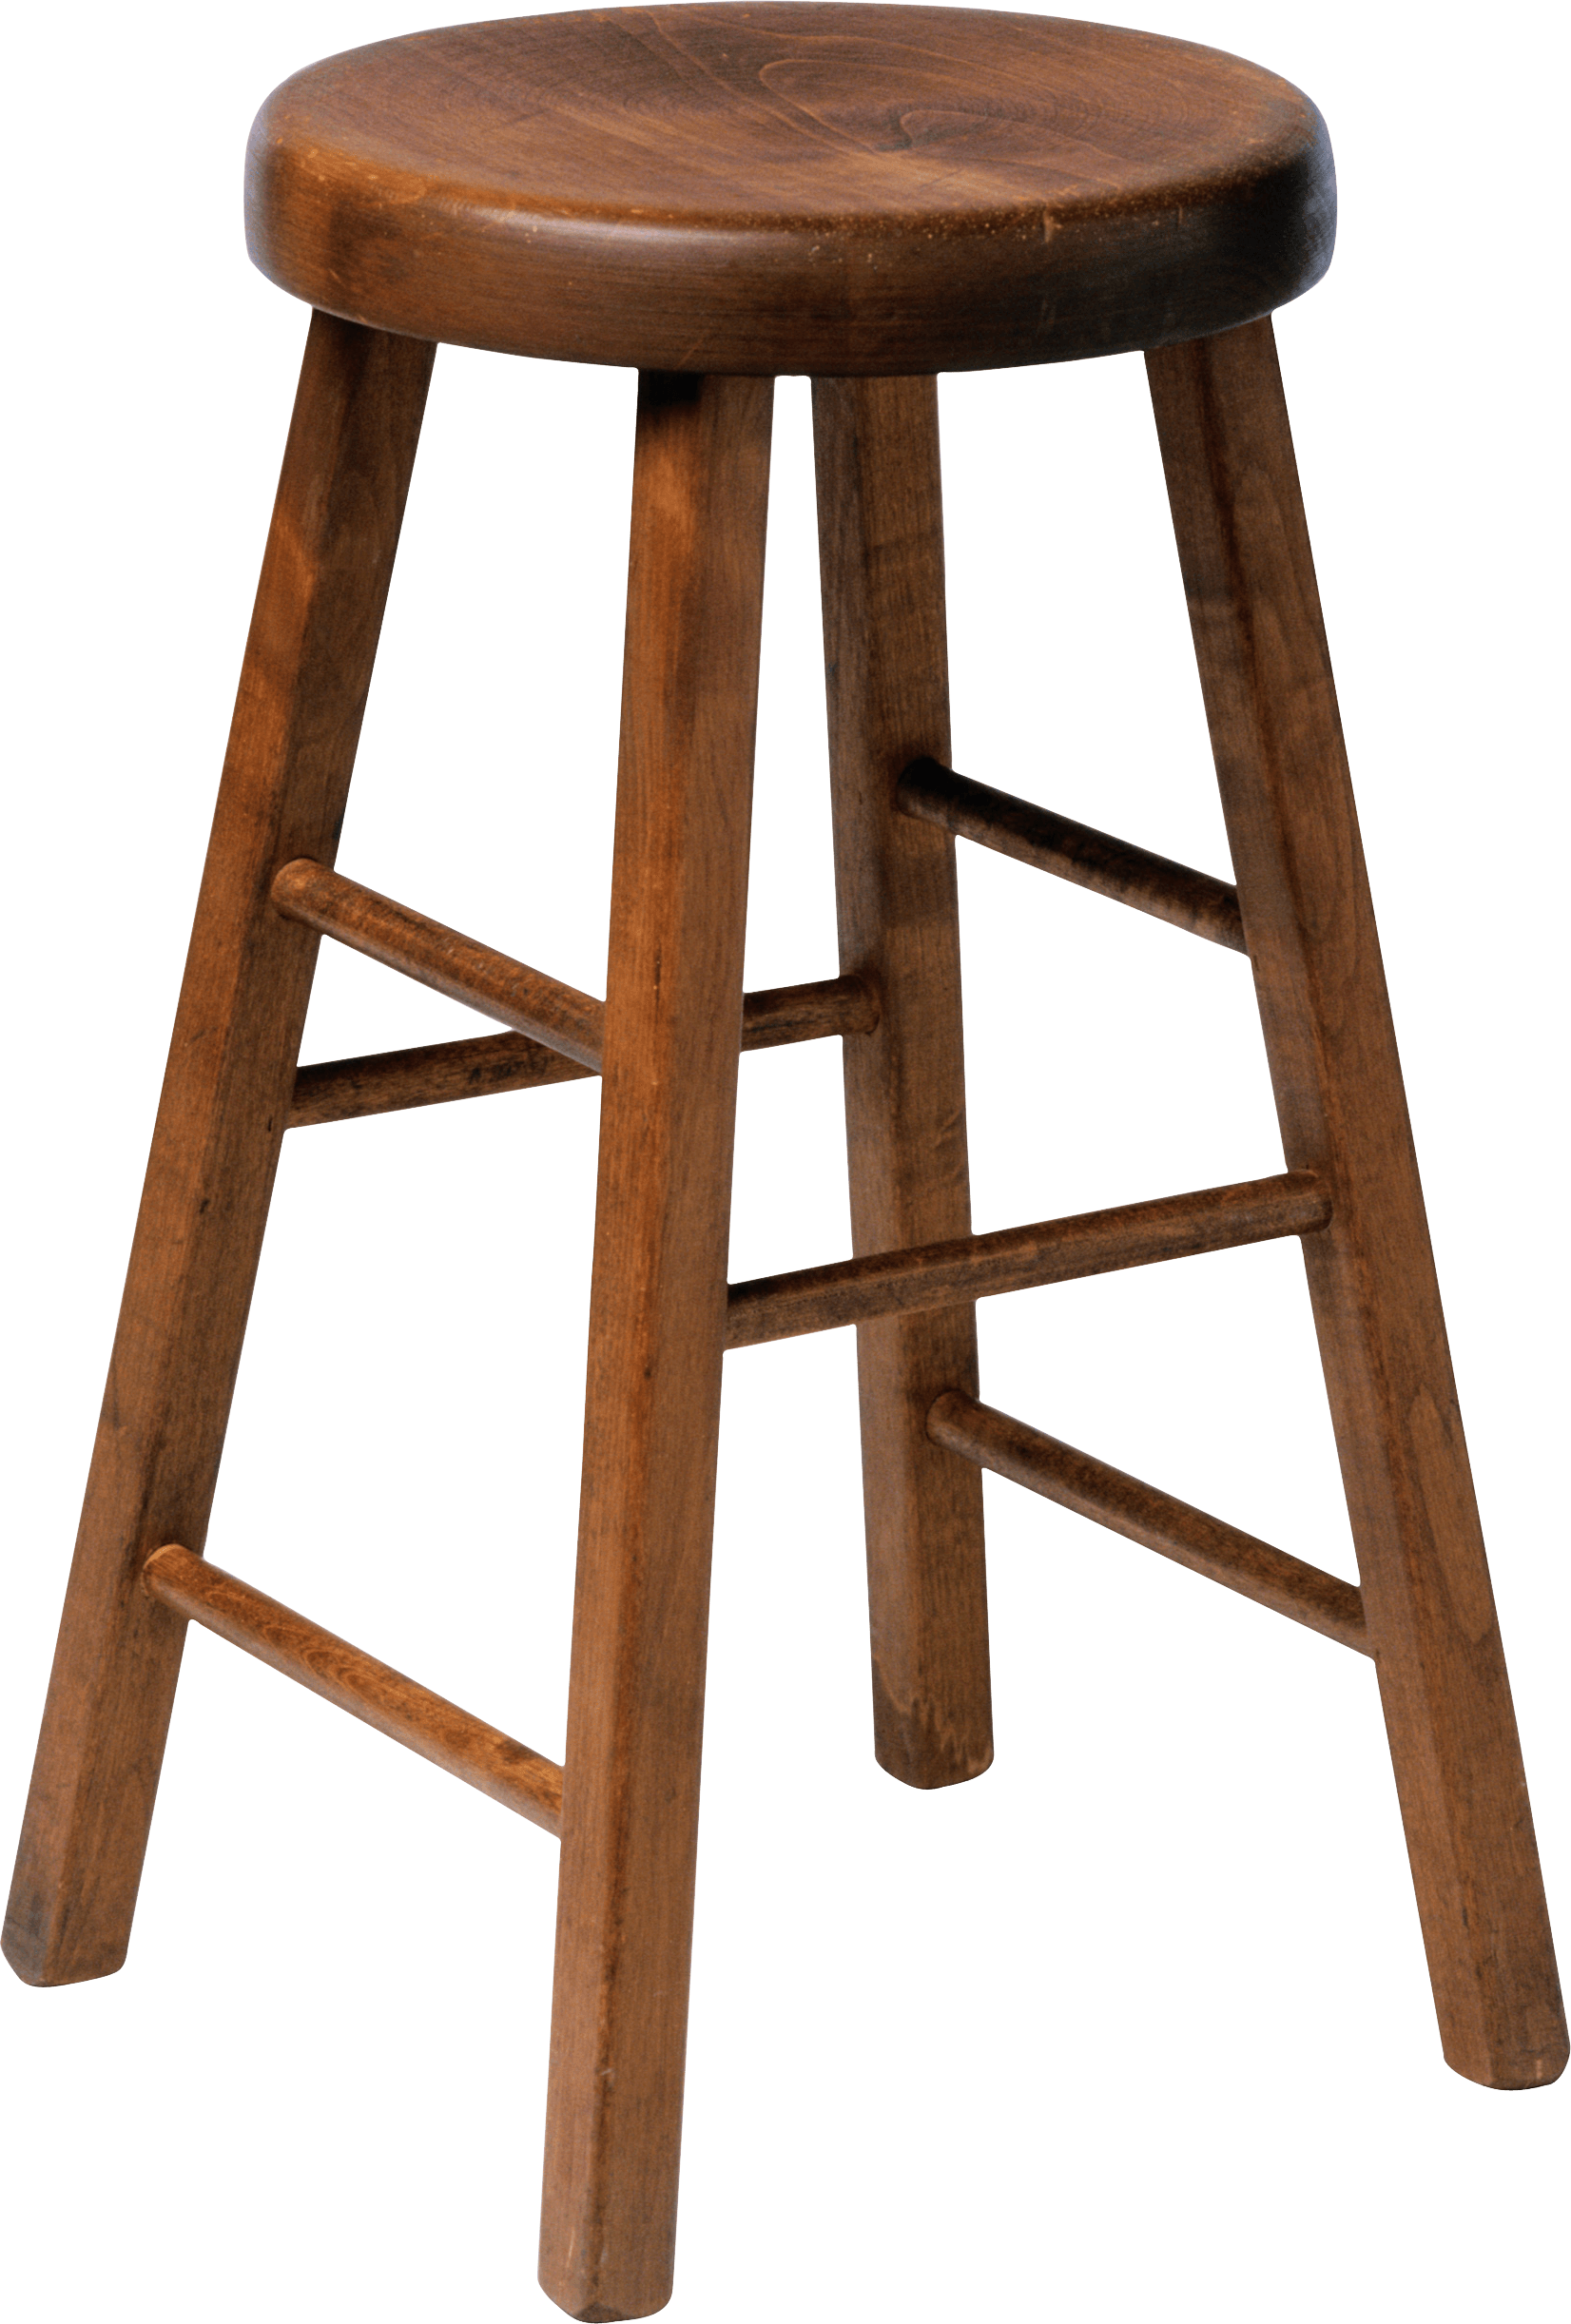 Stool Chair Wooden Stool Chair Transparent Png Stickpng